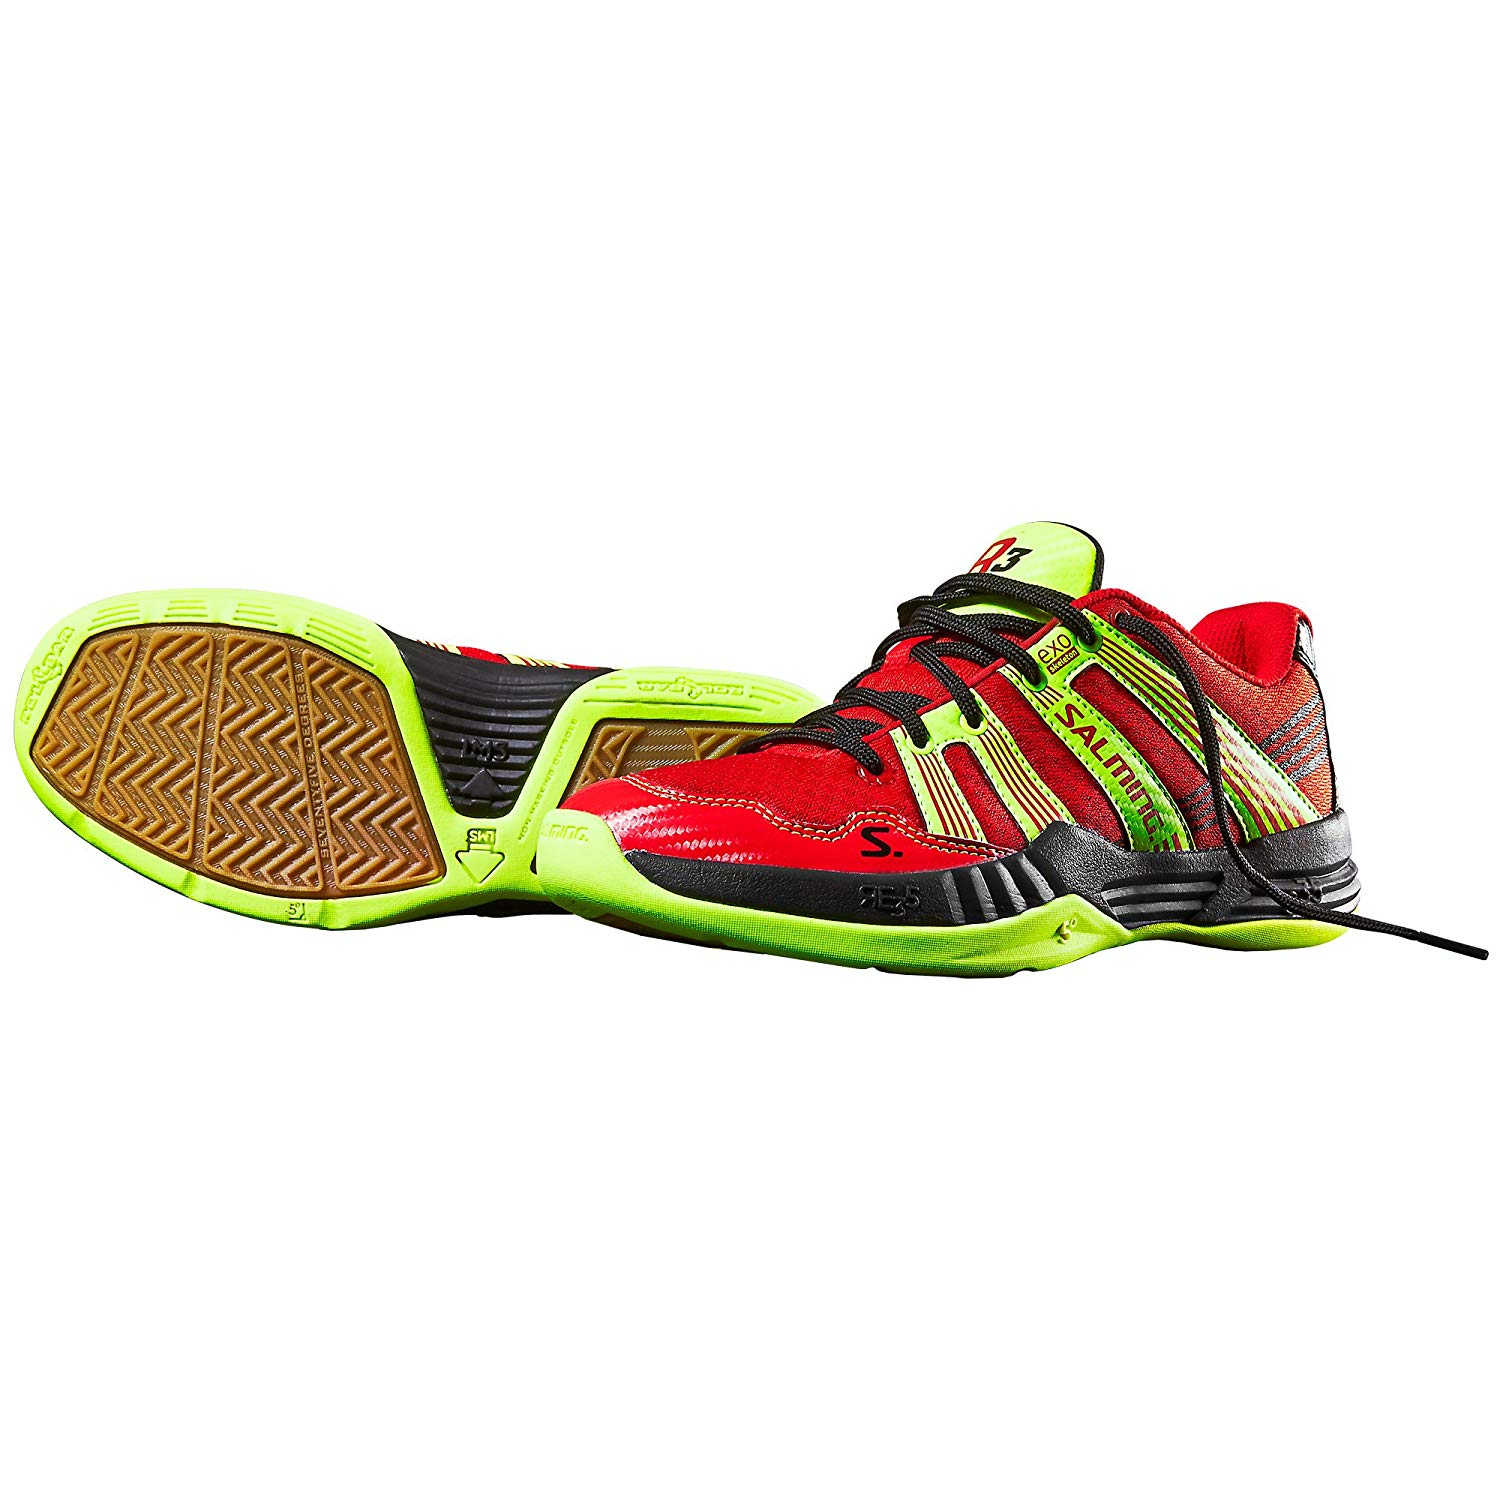 Salming Race R3 3.0 Indoor Shoes Handball Trainers red/neon/black